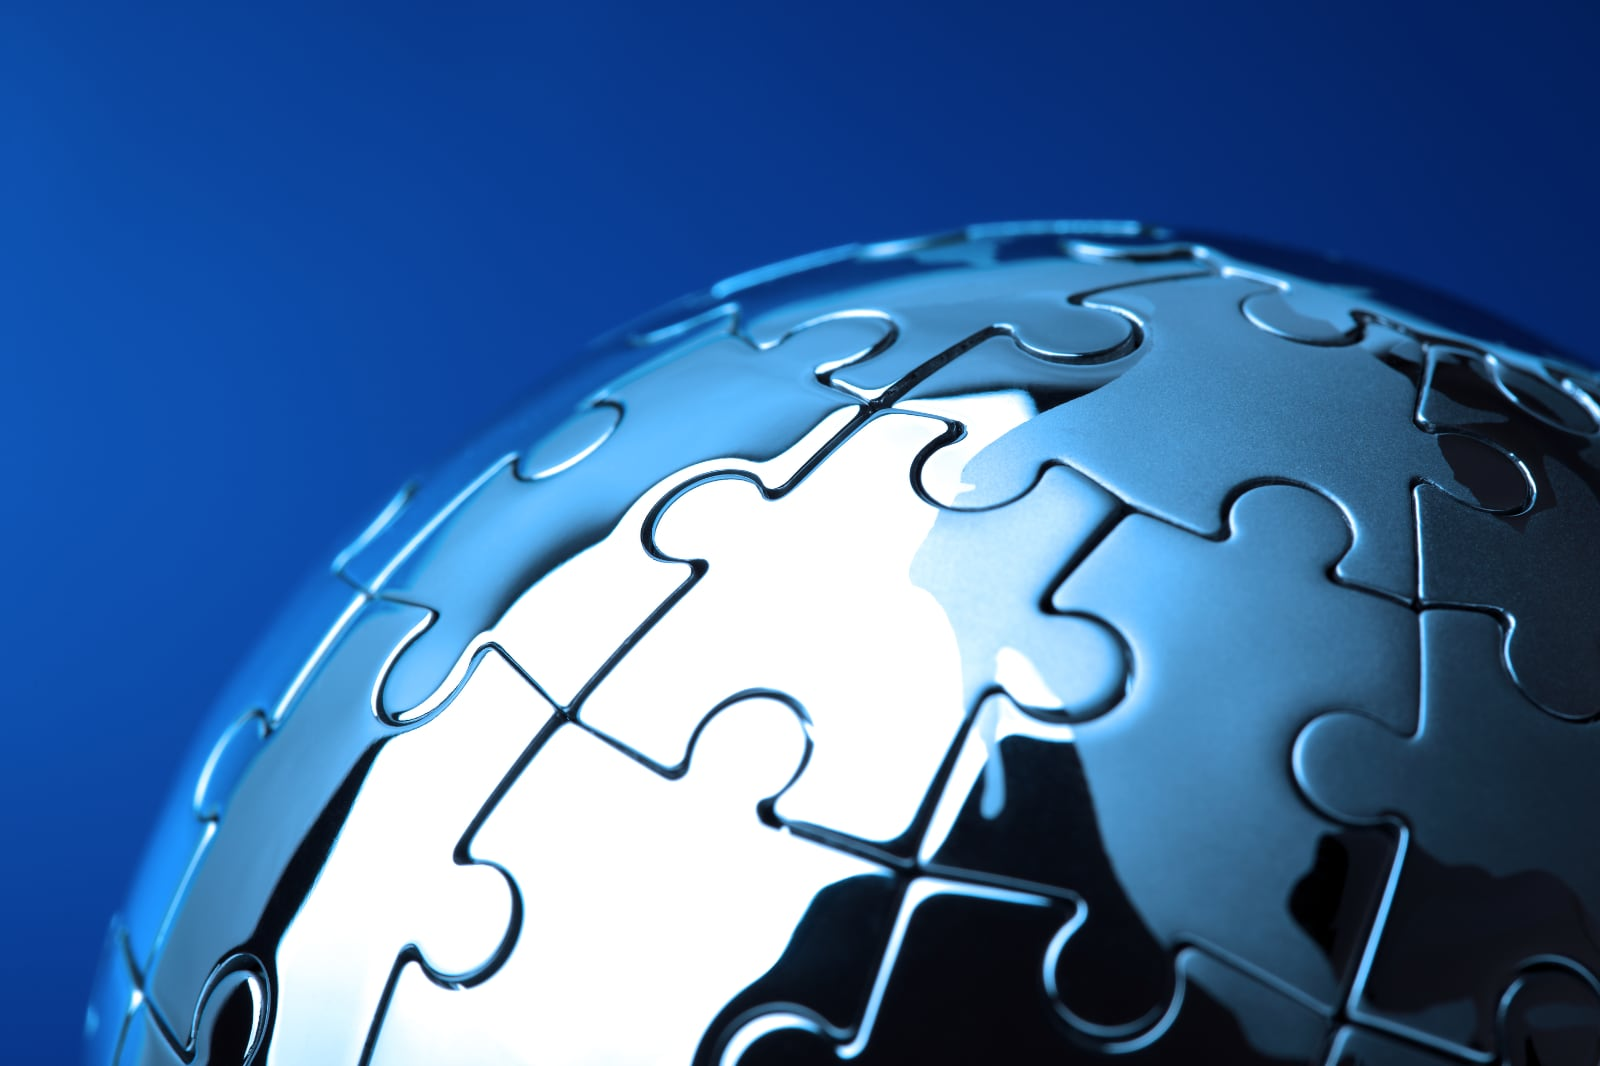 A completed three dimentional silver metallic jigsaw puzzle in the shape of a sphere or globe, with a blue background